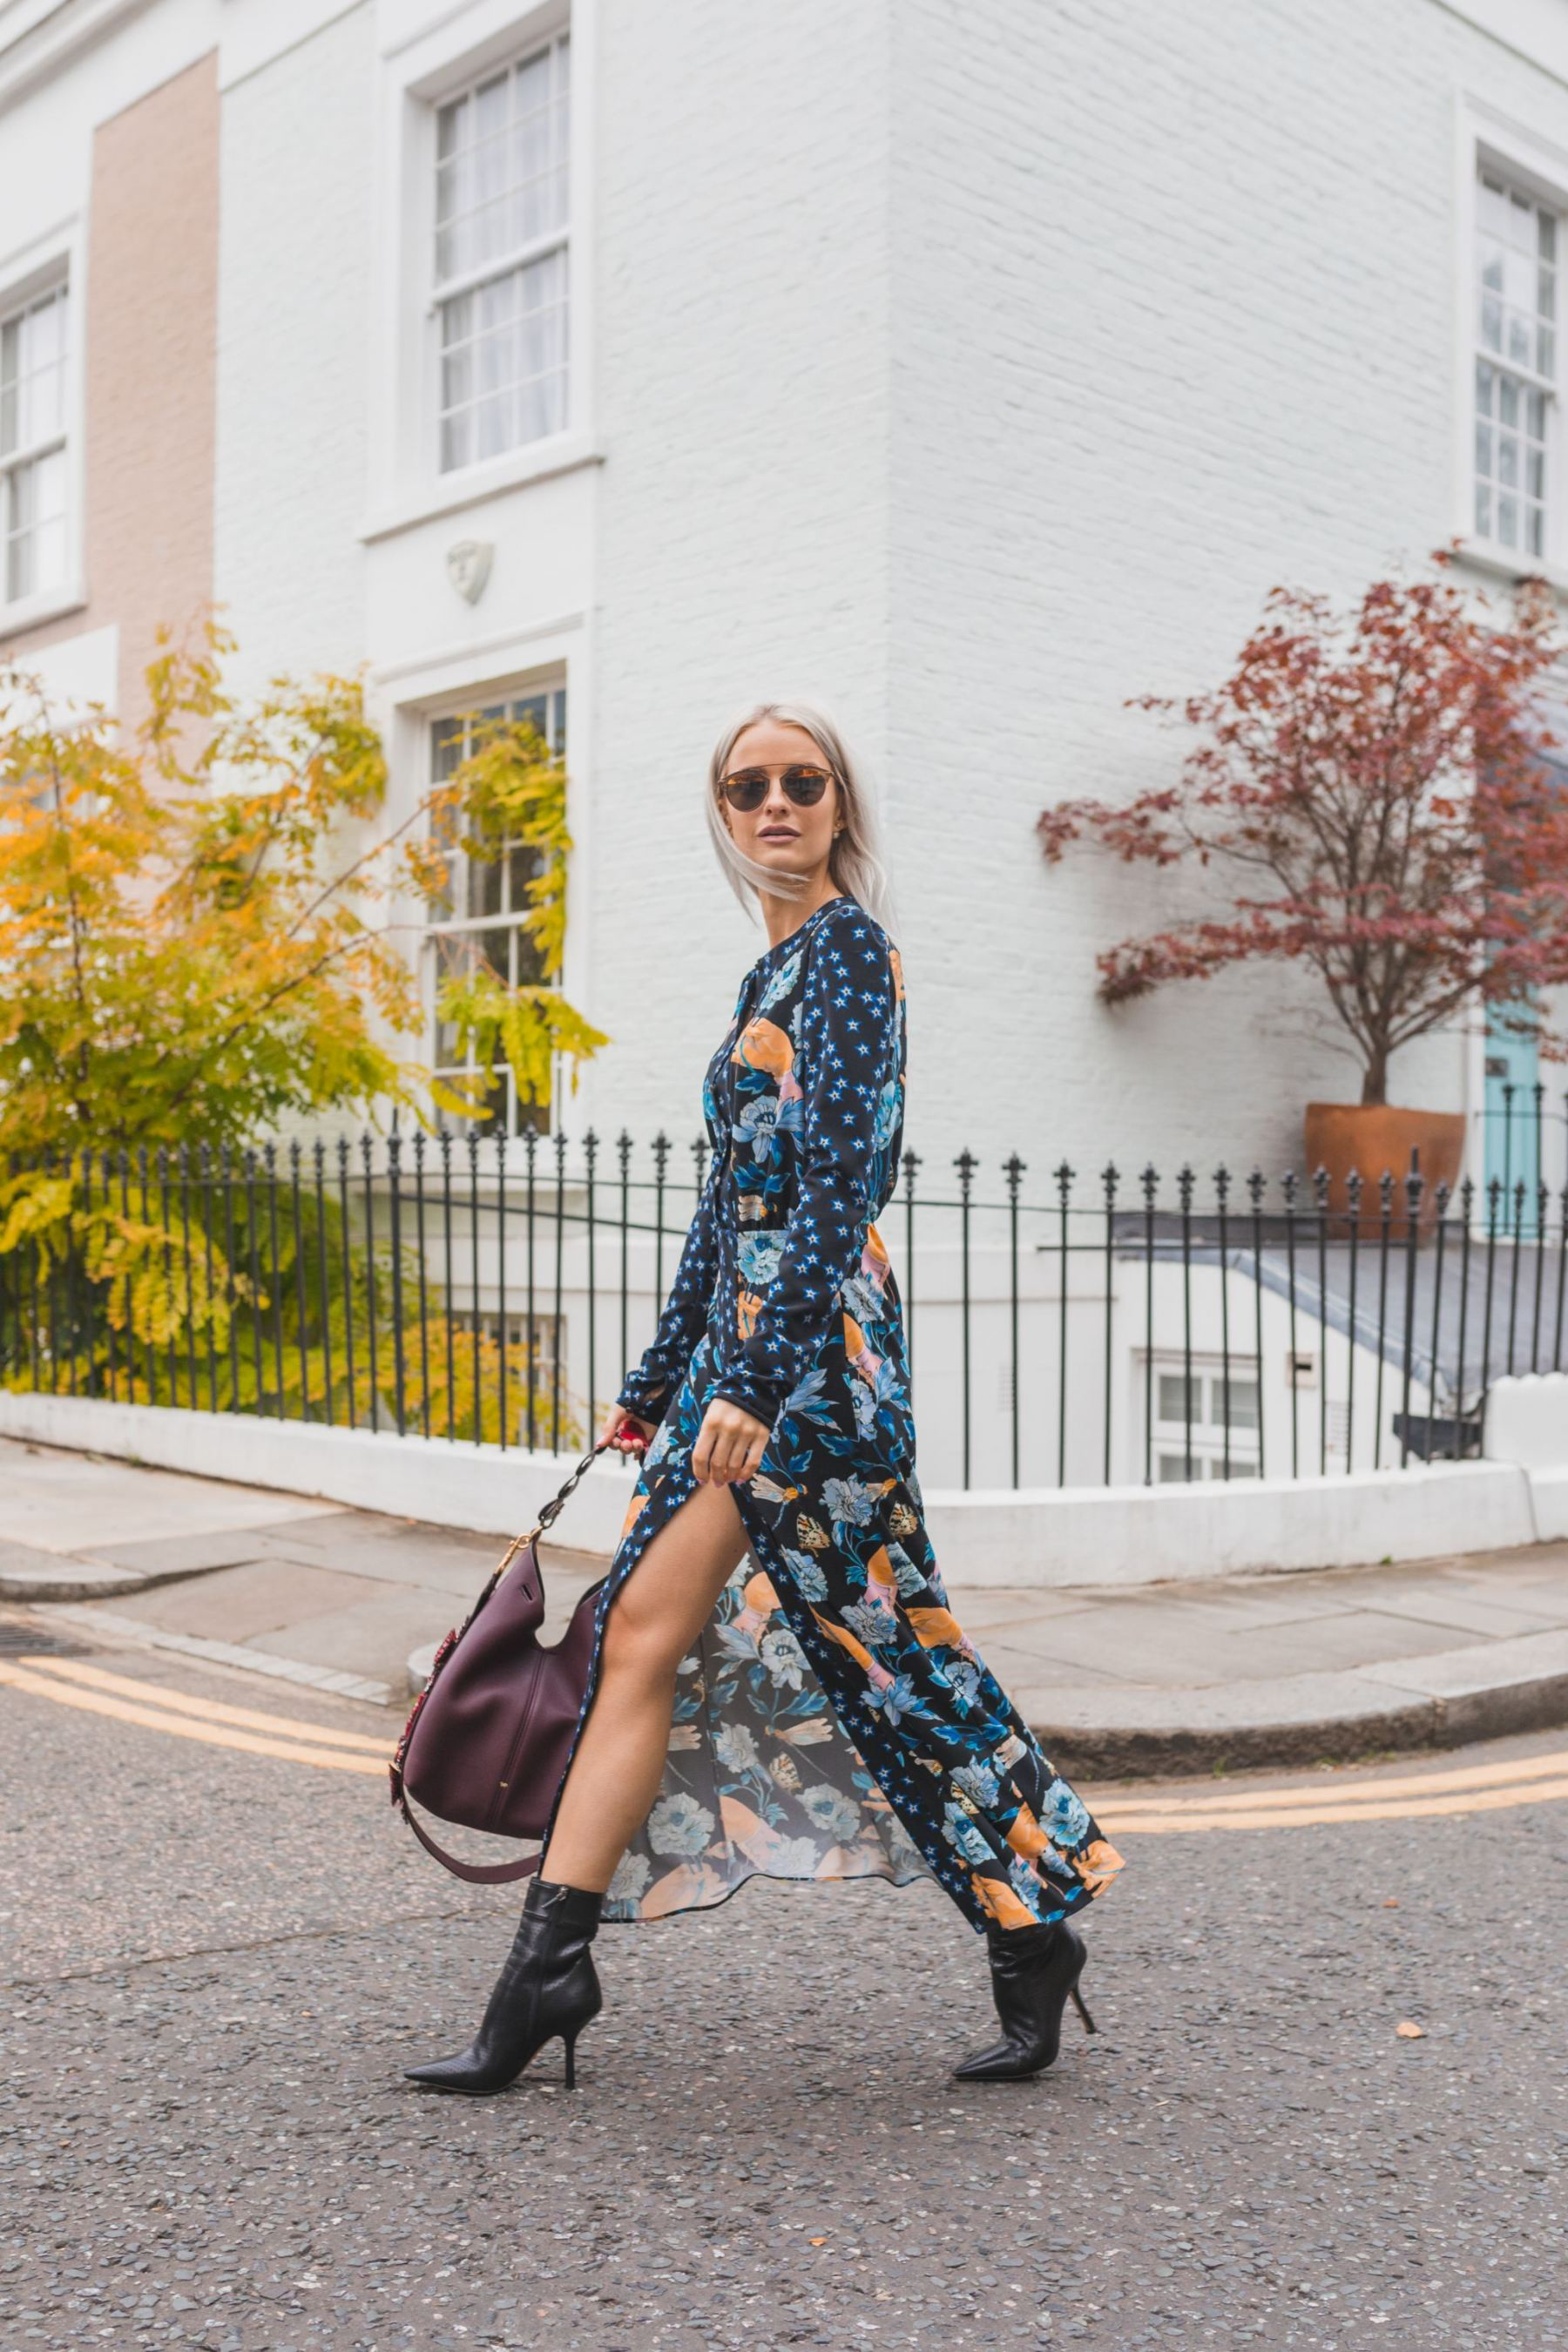 How My Style has Changed: 2013-2018 - Inthefrow